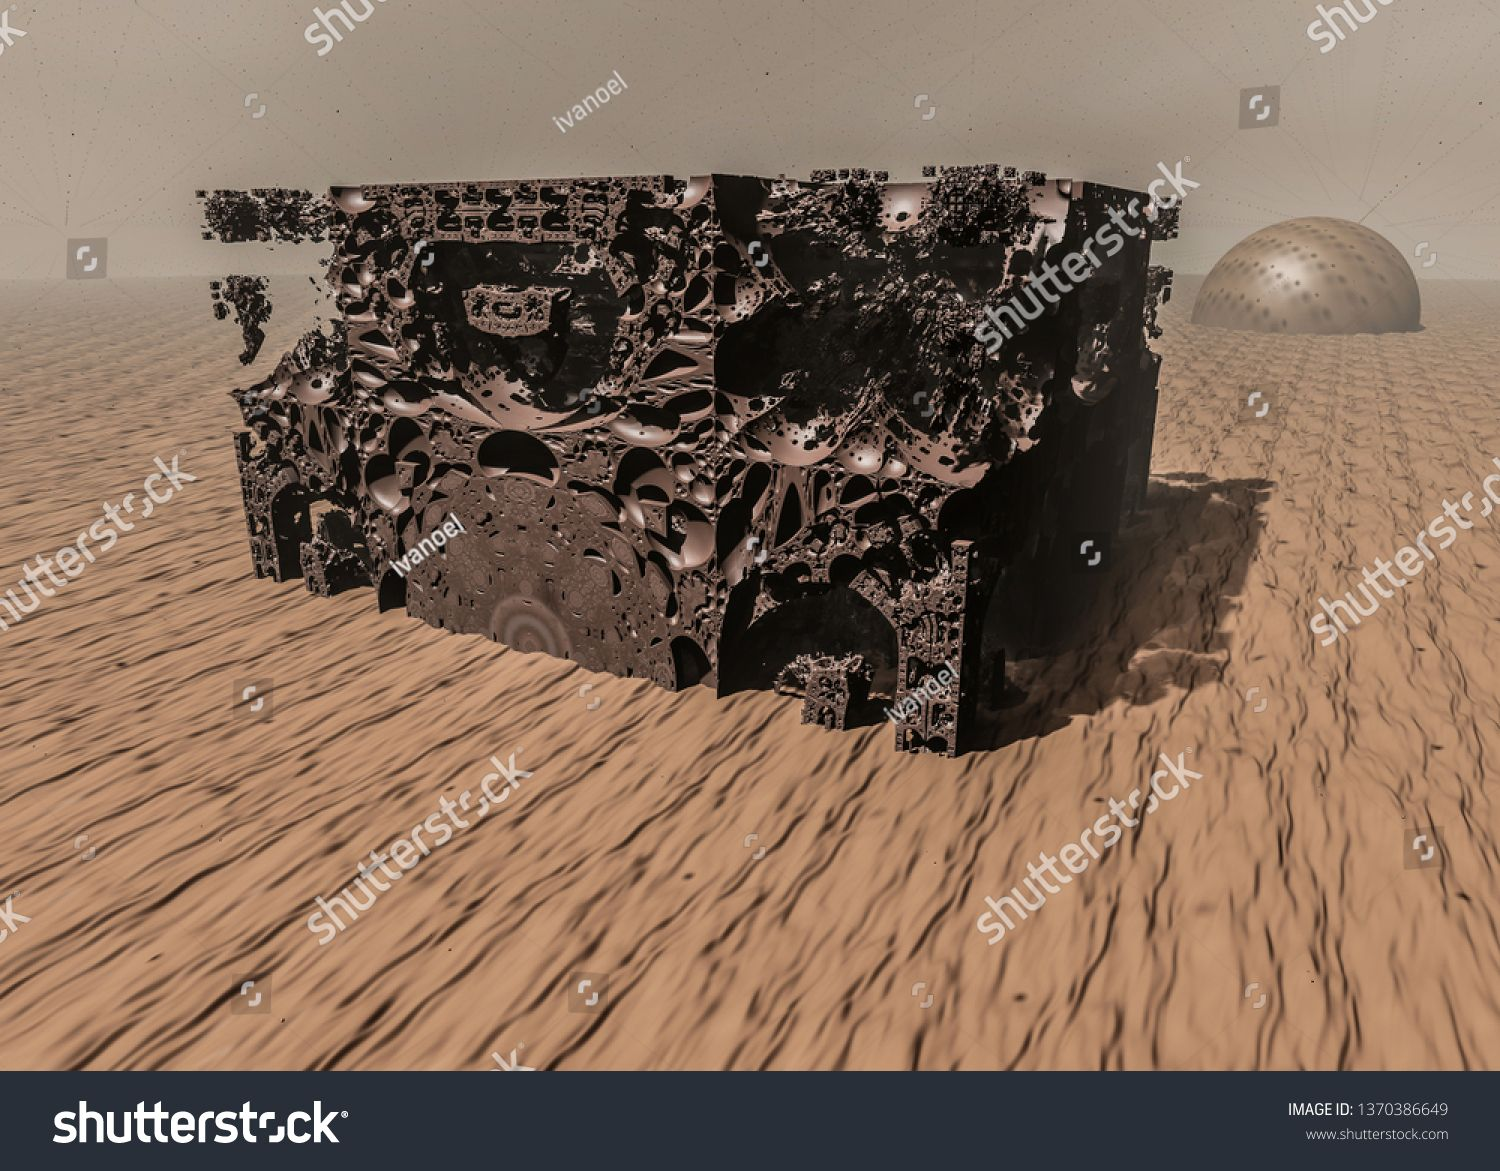 Surreal View Of The Red Planet Mars Destruction 3d Illustration On The Theme Of Space Planets Universe Travel And G Galactic Flyer Design Marketing Flyers